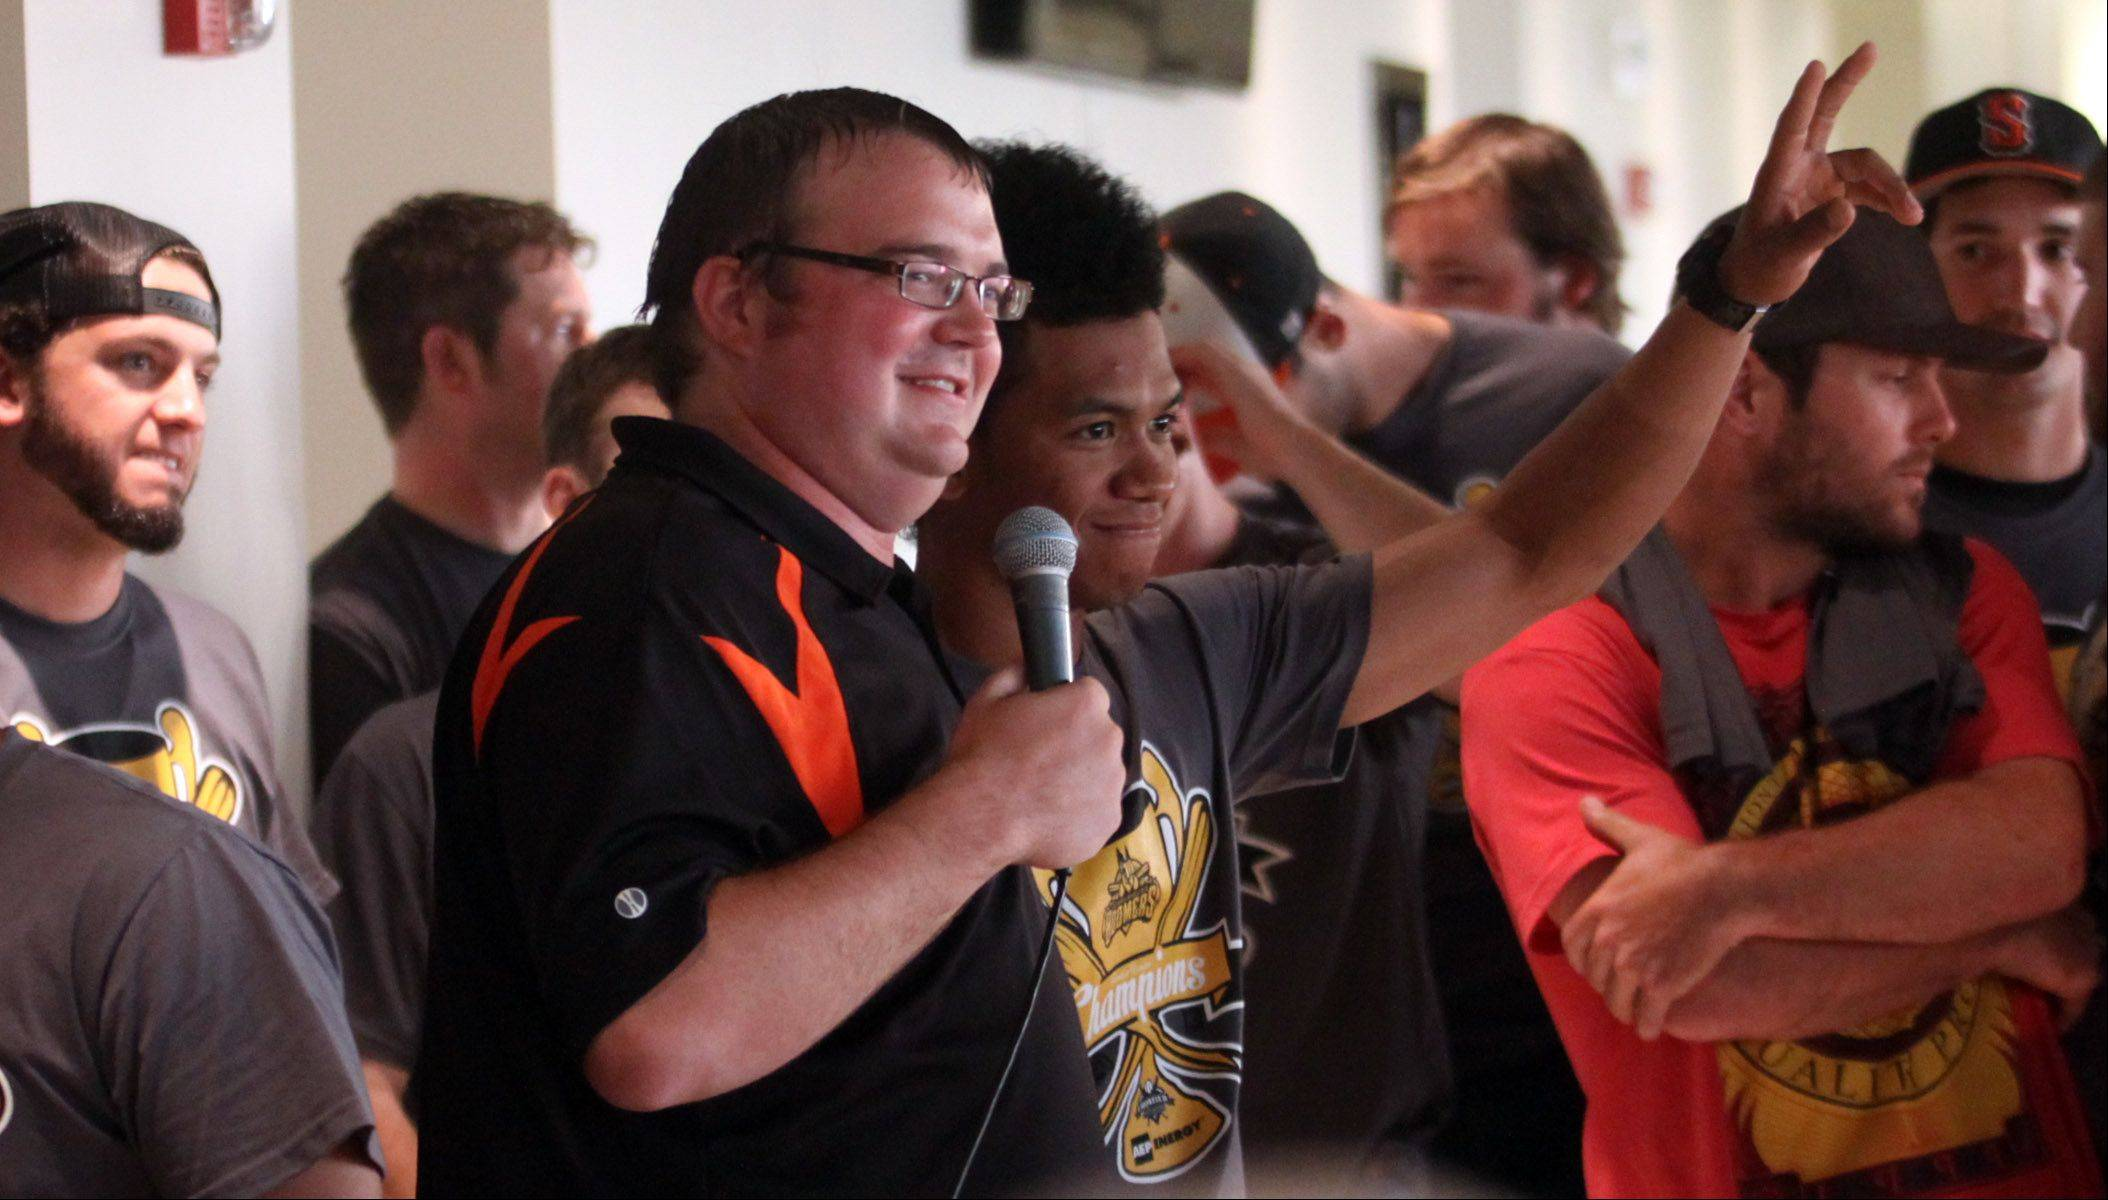 Boomers broadcaster Tim Calderwood introduces team members of the Boomers as the team arrived home to a reception at Boomers Stadium in Schaumburg on Wednesday.